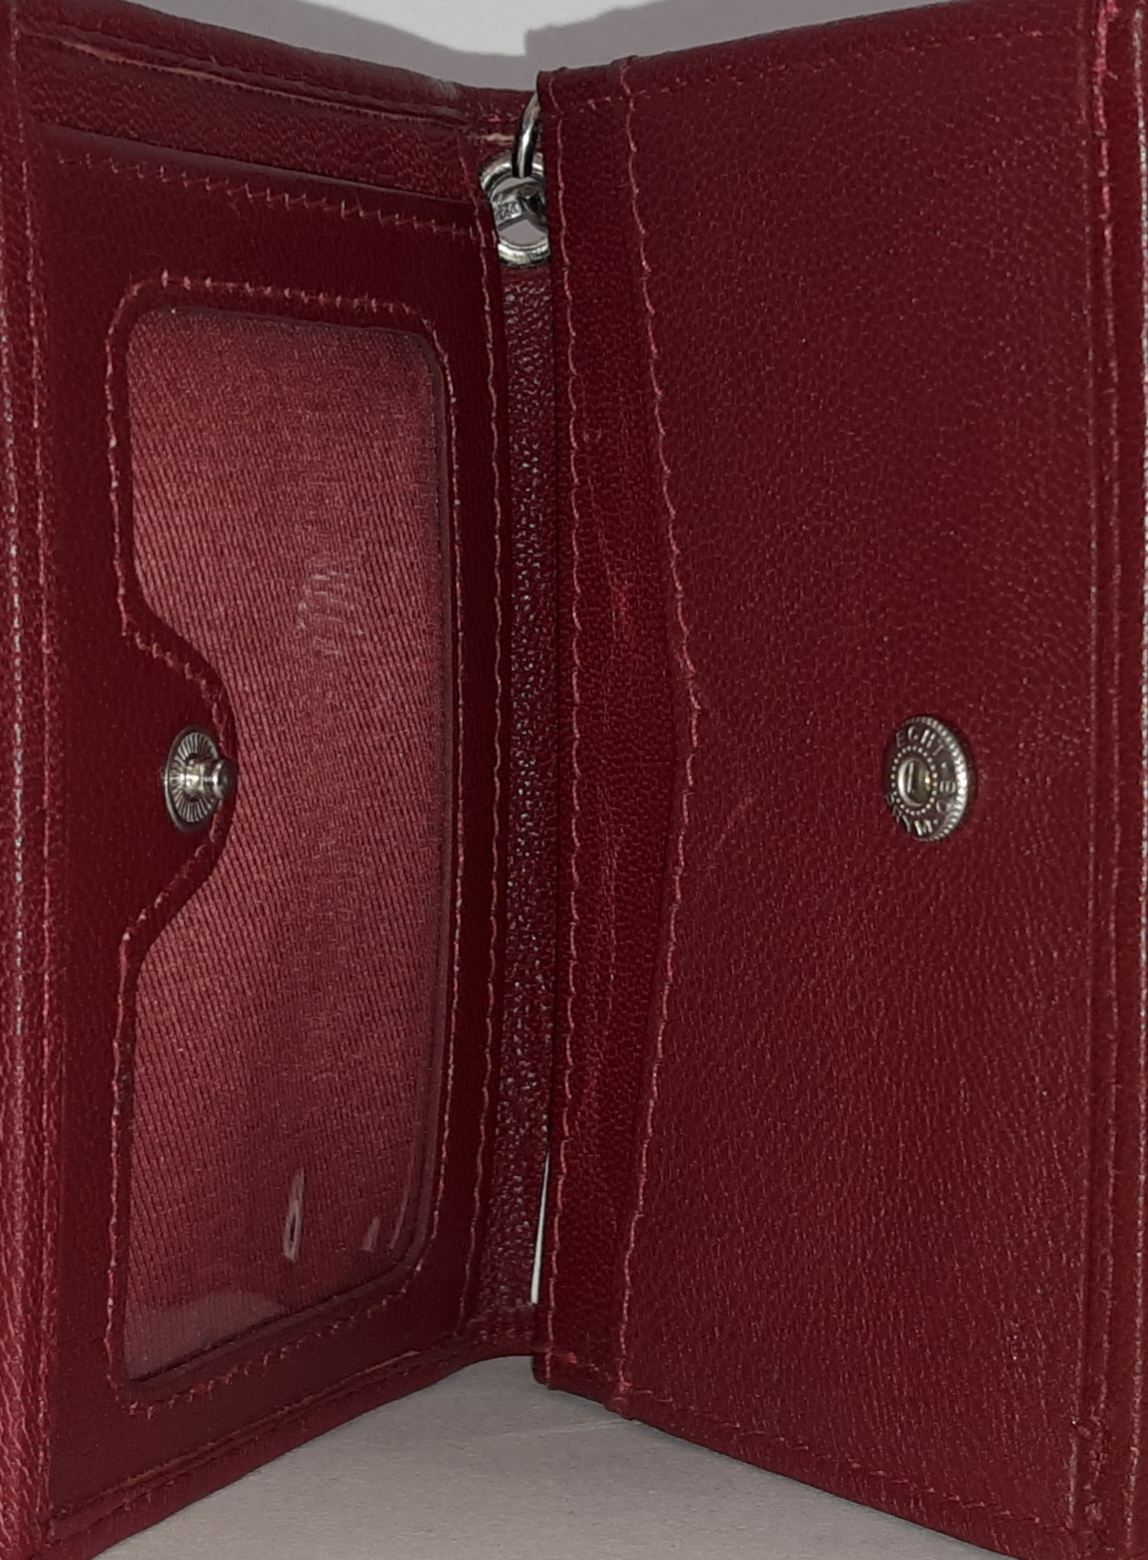 Image for the North Central College Red Leather Snap ID Holder/ wallet product